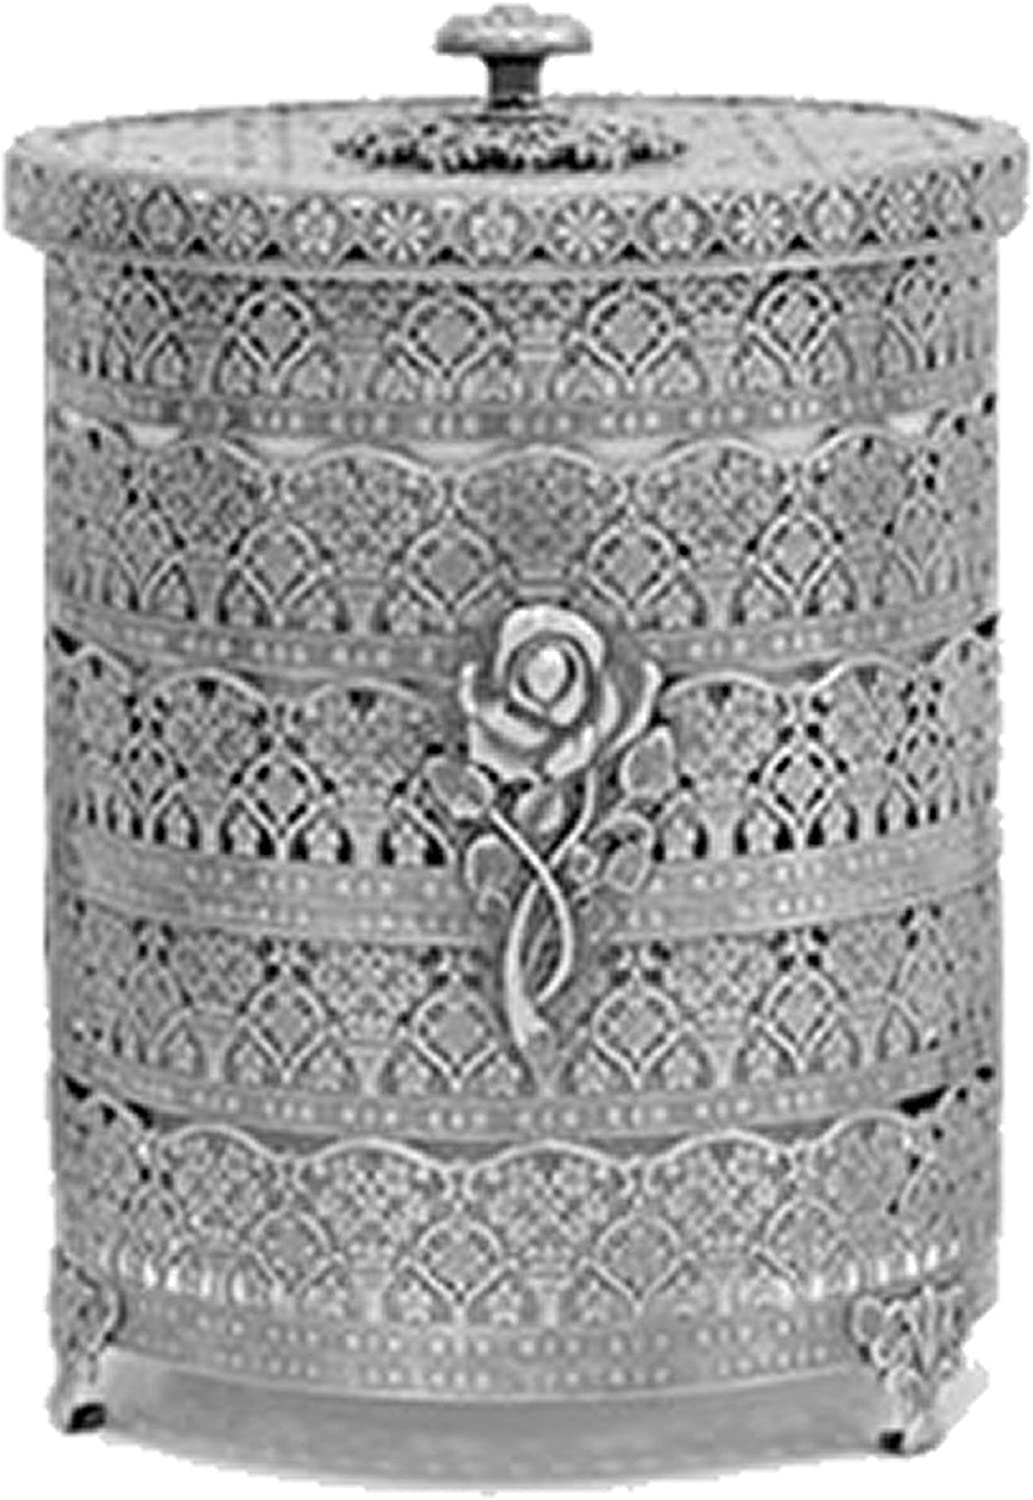 SEHAMANO Rose Patterned Antique Wastebasket, Vintage Decorative Small Trash Can, Garbage Container Bin for Vanity, Bedroom, Kitchen, Powder Rooms, Home Office Rubbish Bin (Small, Tin (Gray))